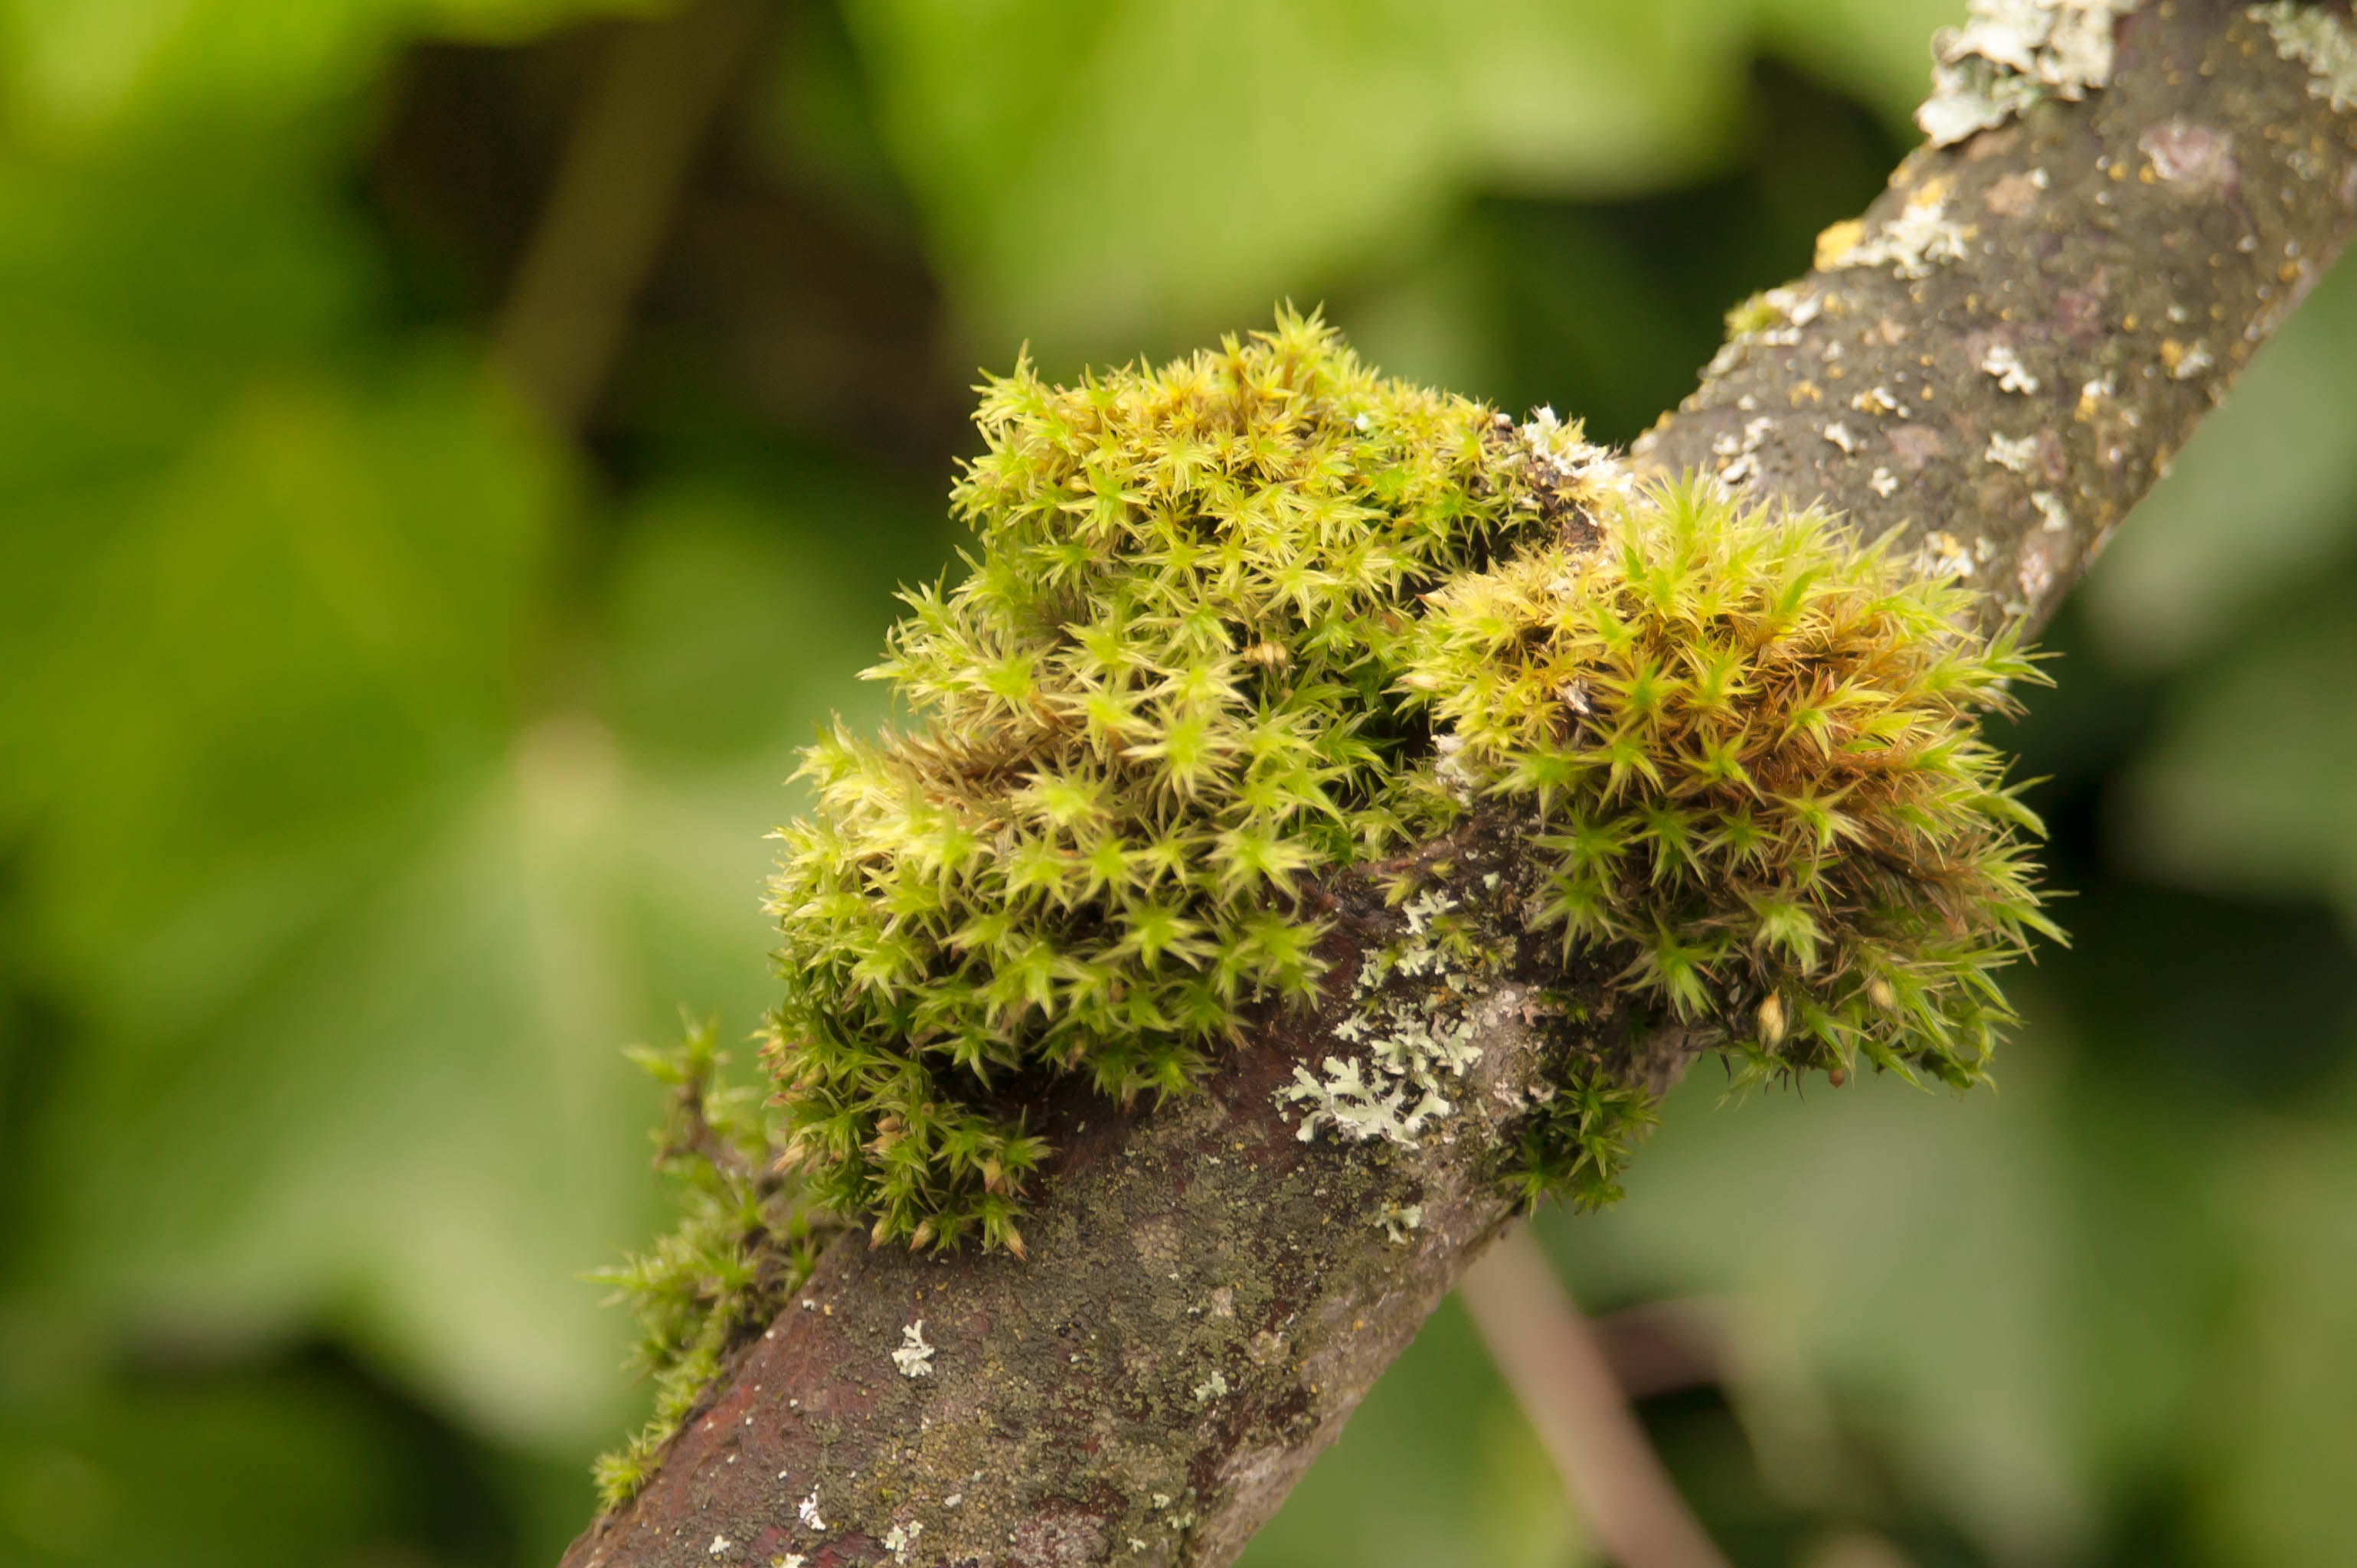 moss and lichen